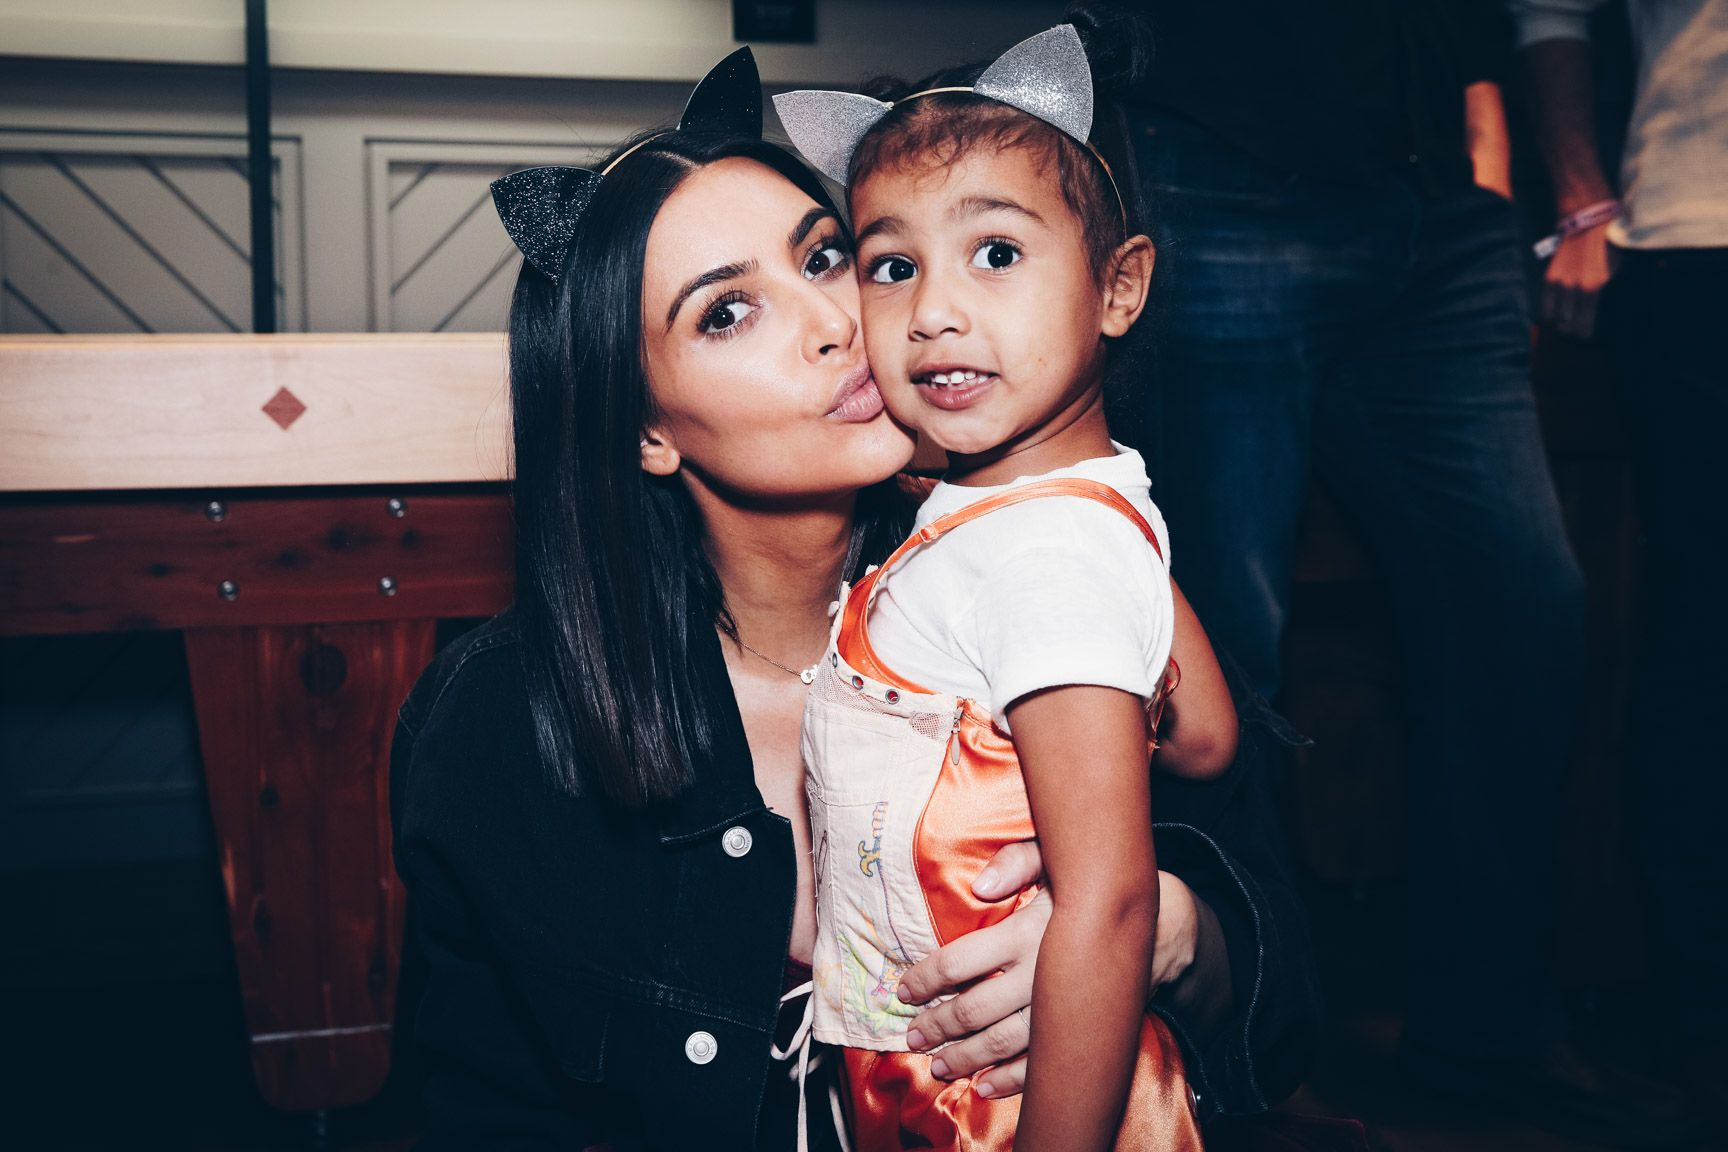 Kim Kardashian Shares An Adorable Photo Of Daughter North During The School Run